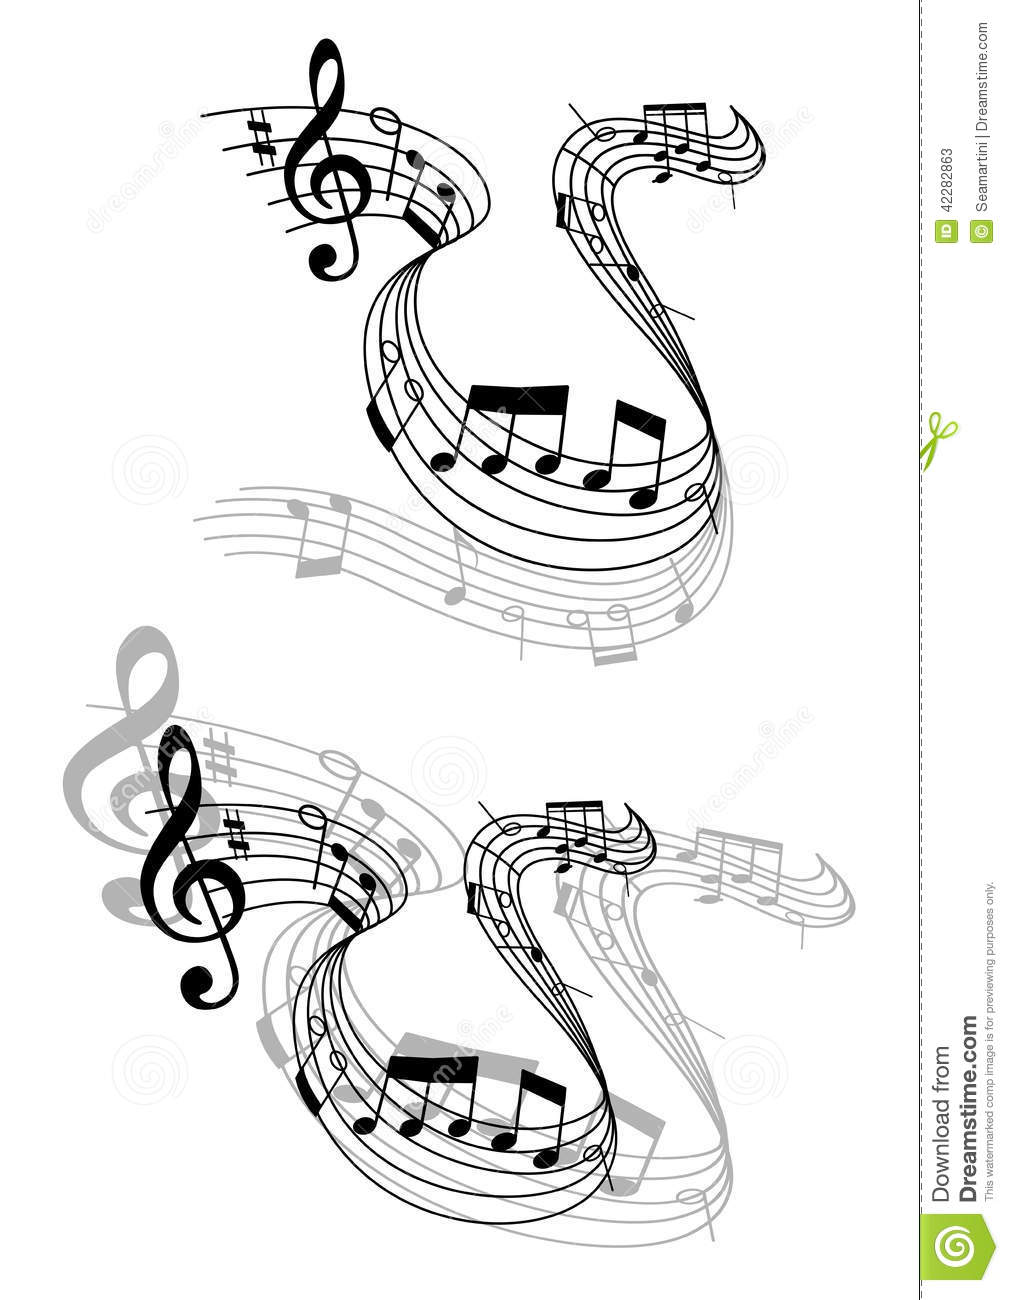 Swirling Music Score With Musical Notes Stock Vector